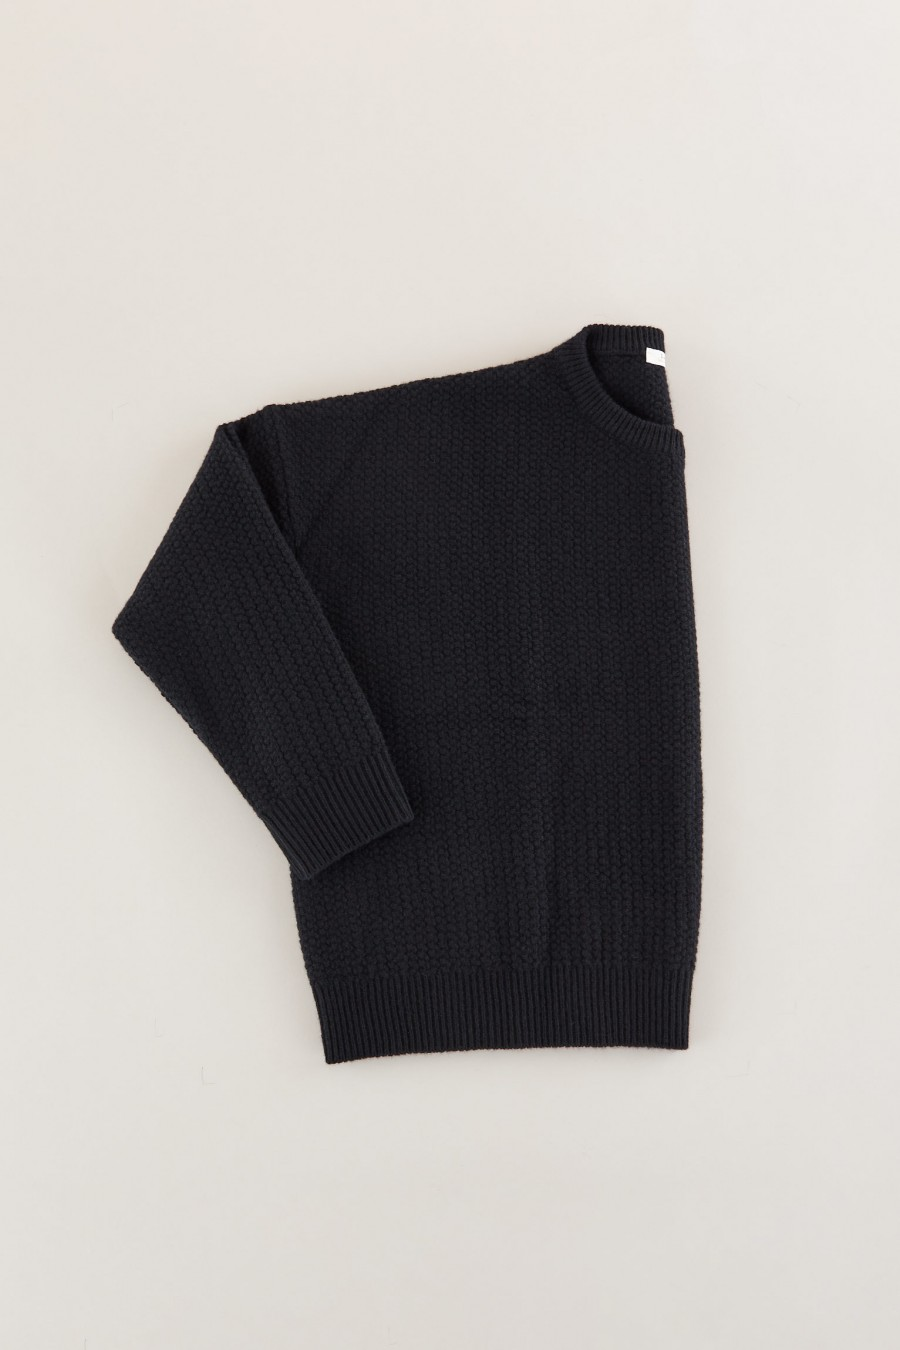 Black knitted wool jumper